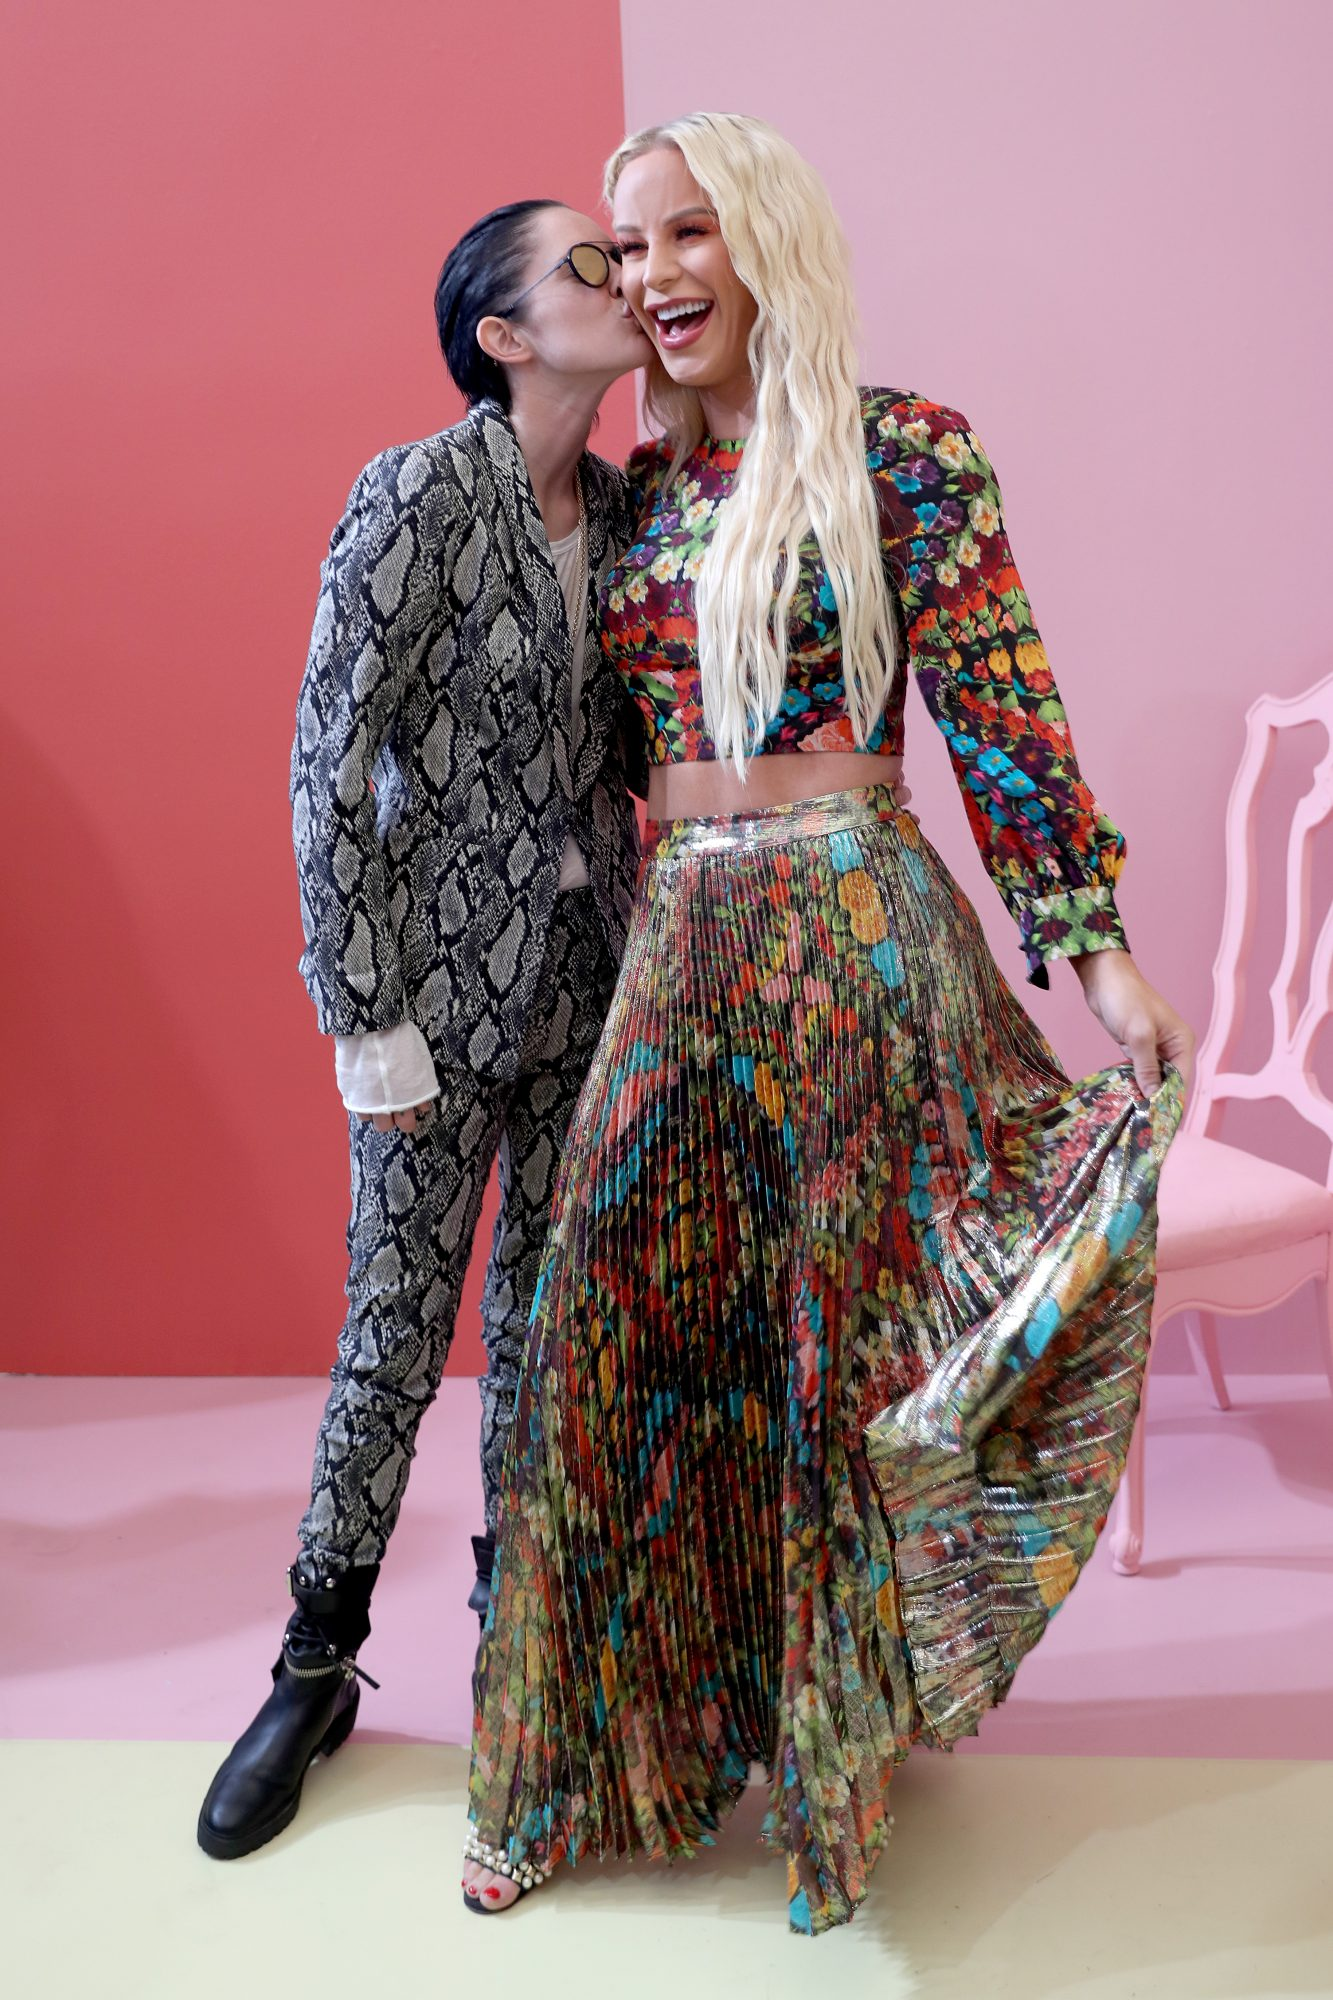 Nats Getty and Gigi Gorgeous